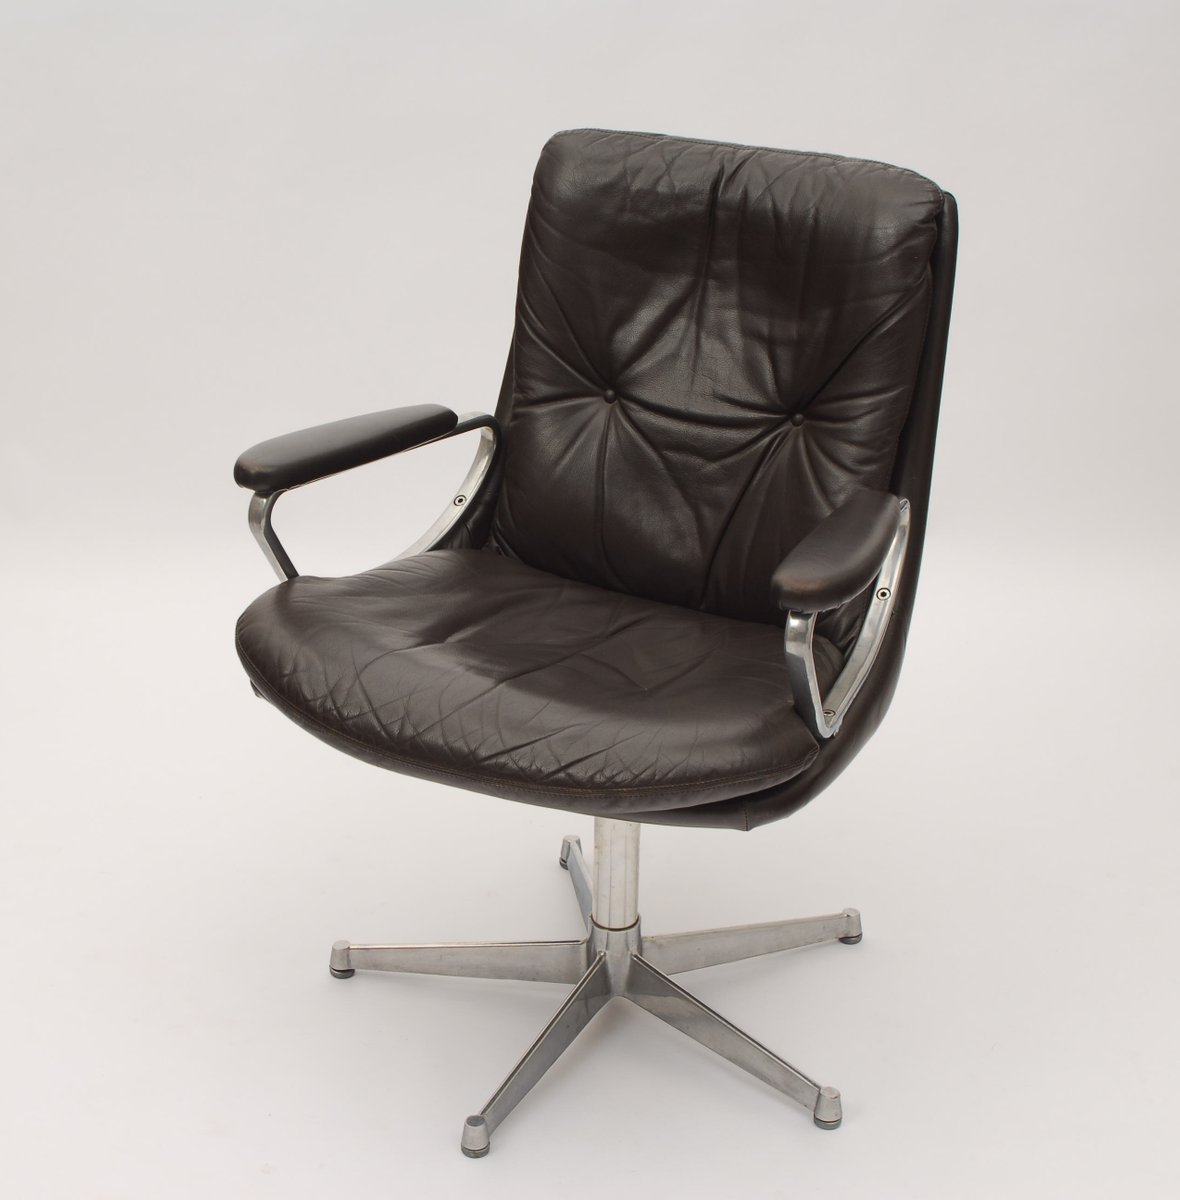 ergonomic chair norway peg perego tatamia high vintage norwegian leather office by ring model